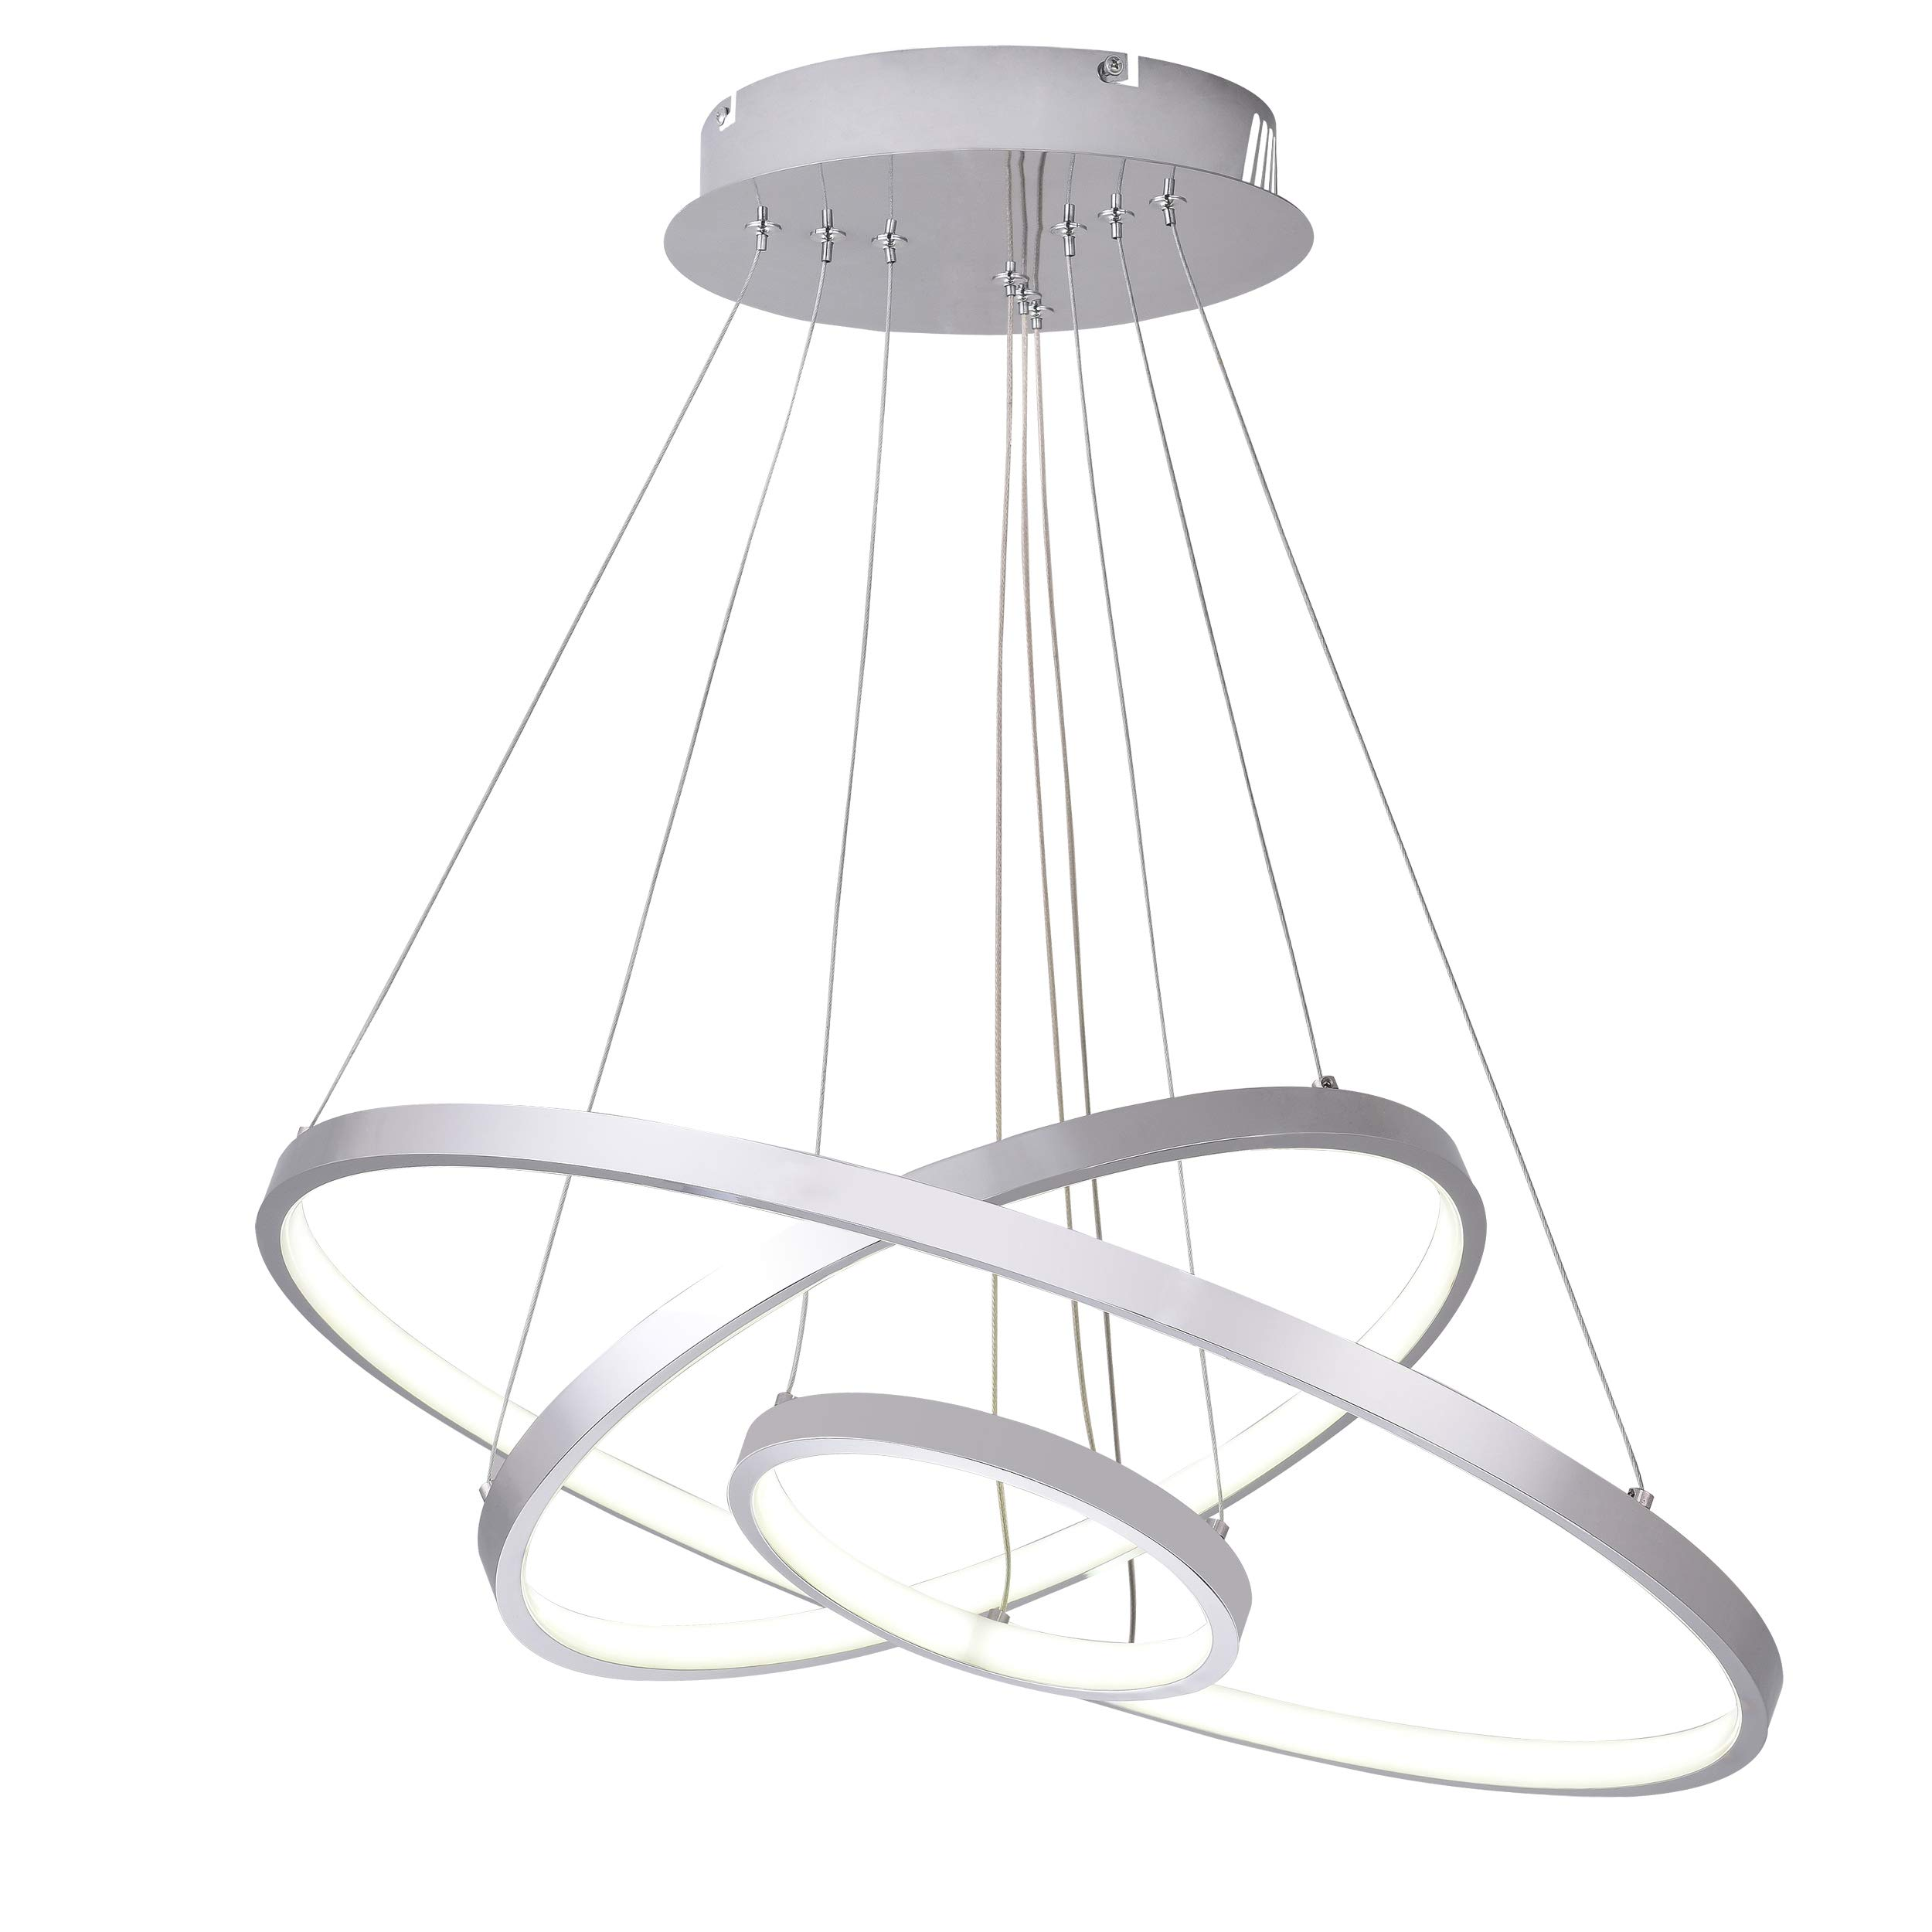 Diborui Modern Pendant Light, Adjustable LED Ceiling Fixture with 3 Ring, Round Shape Chandeliers for Bedroom, Living Room, Dining Room and Kitchen Island, Daylight (5000K), 65W, Chrome